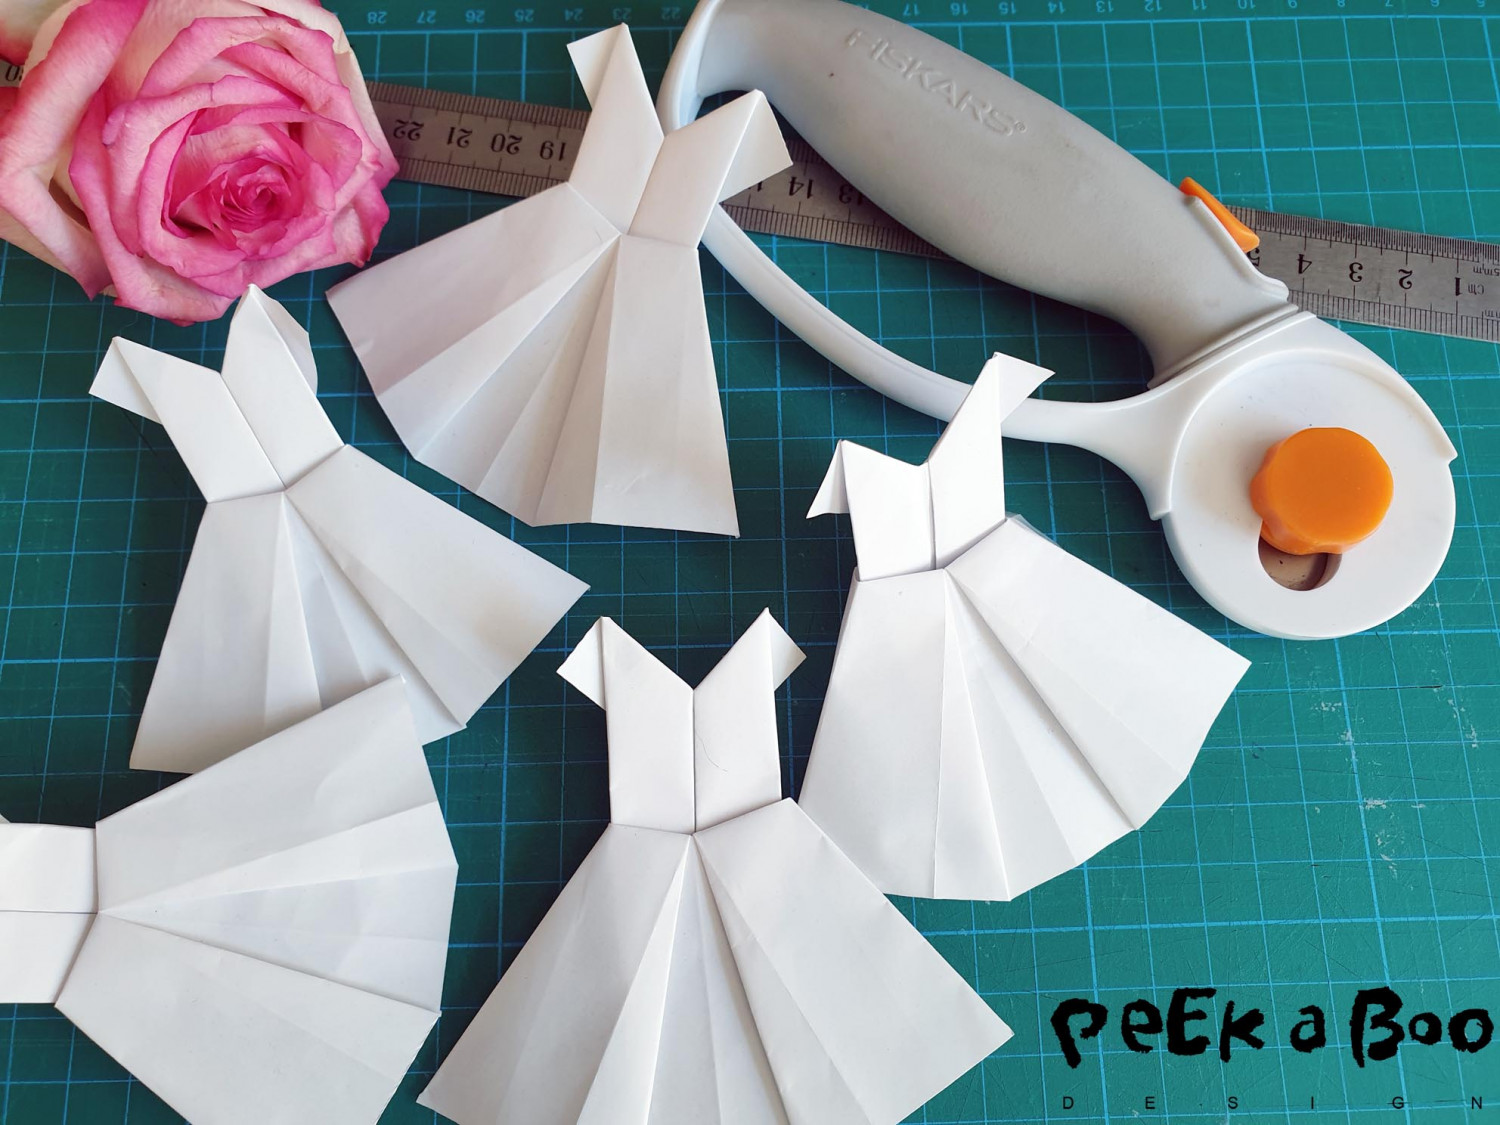 Folded origami dresses. See video for instructions.